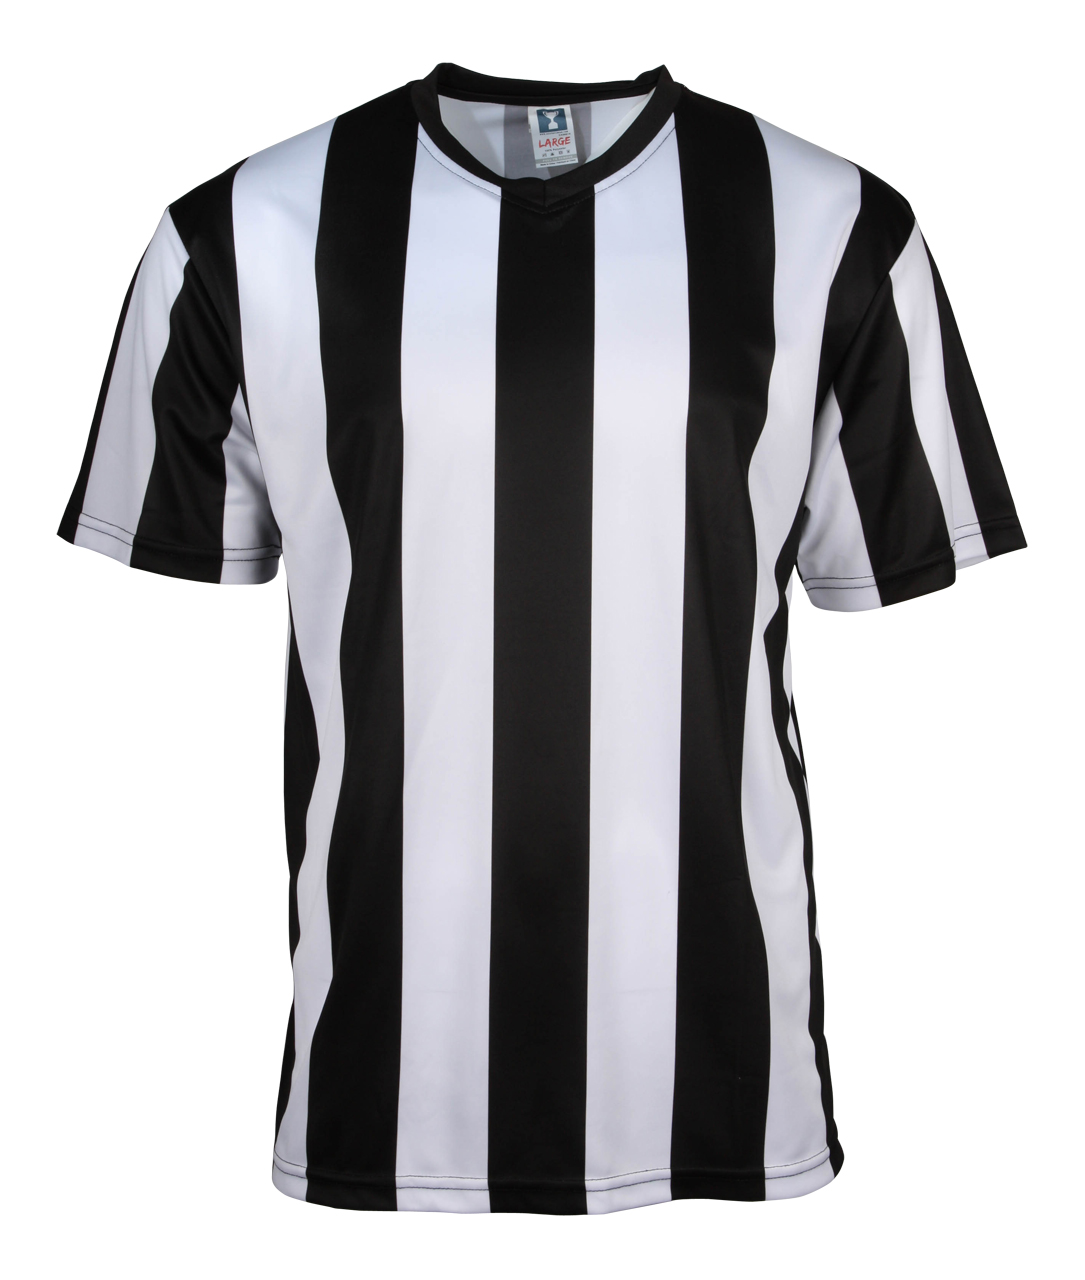 Picture of N3 SPORT Dry Fit Referee Shirt